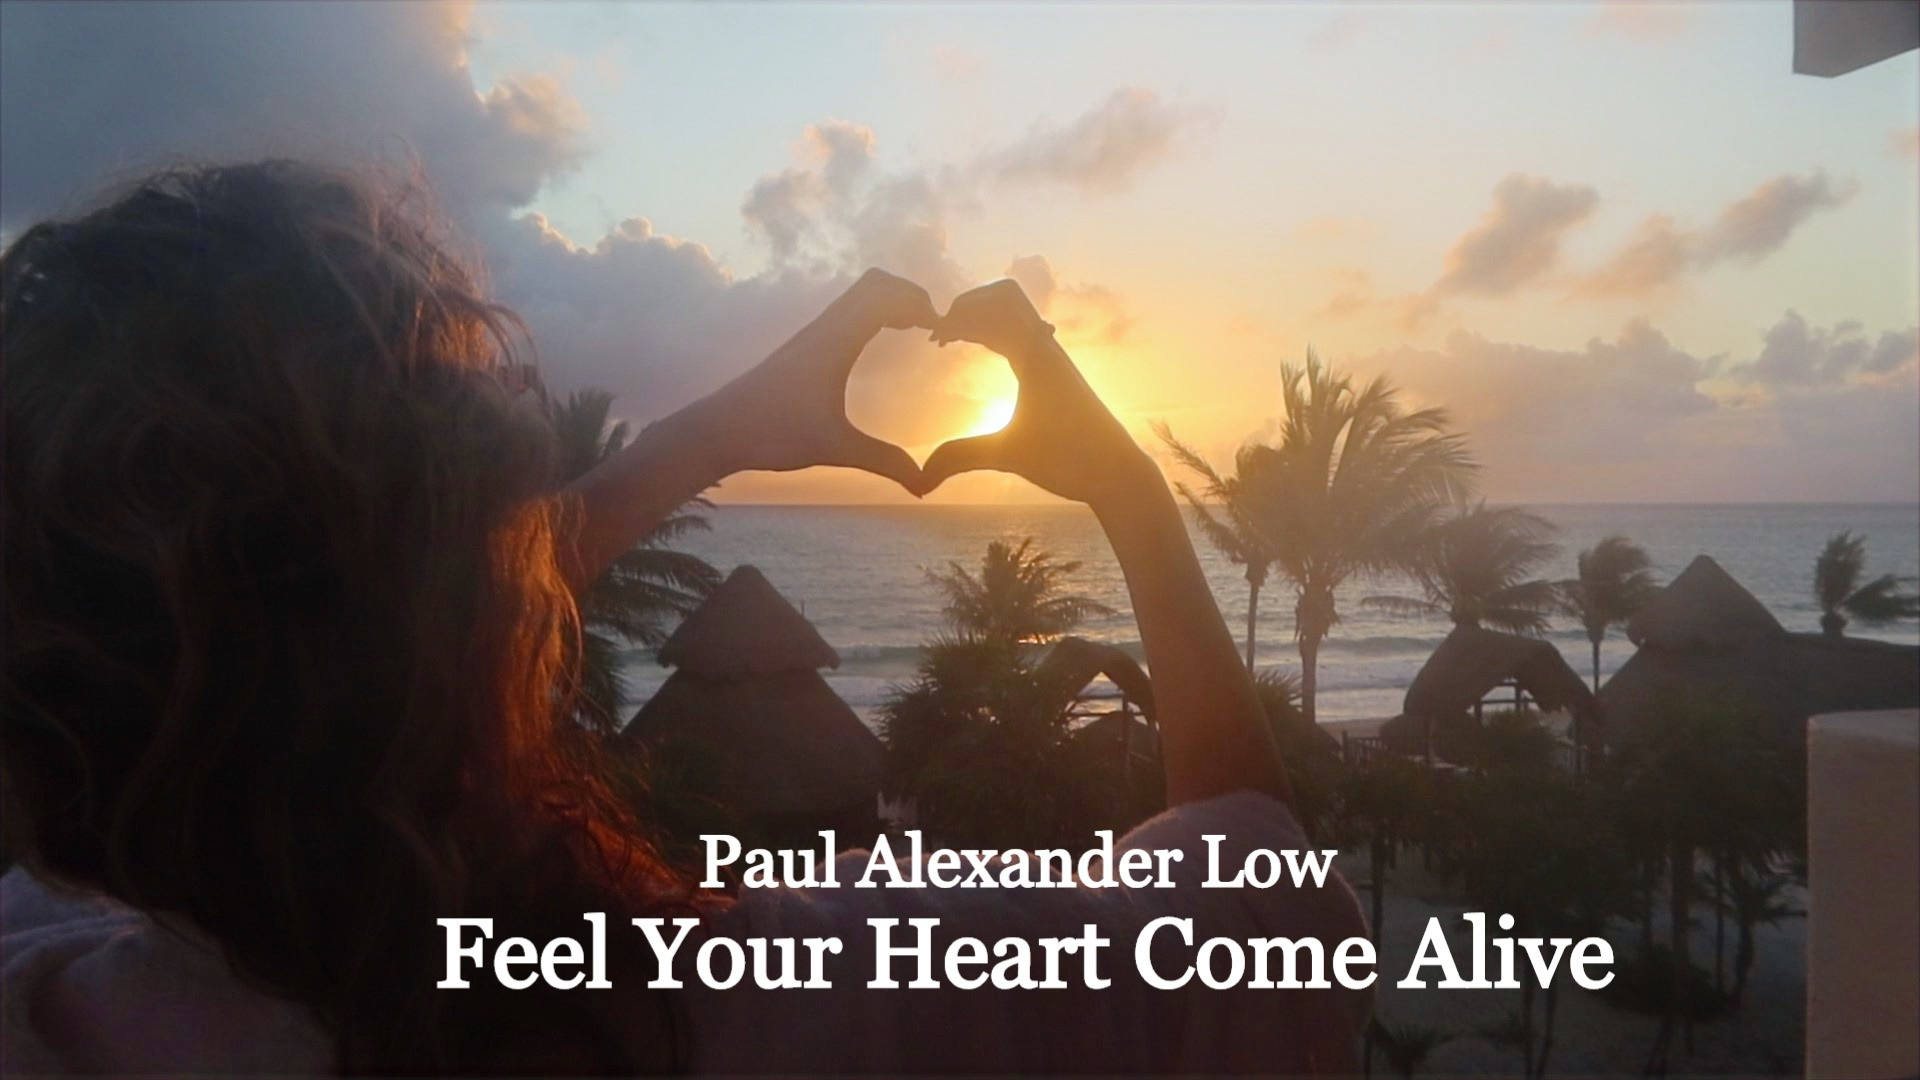 Feel Your Heart Come Alive